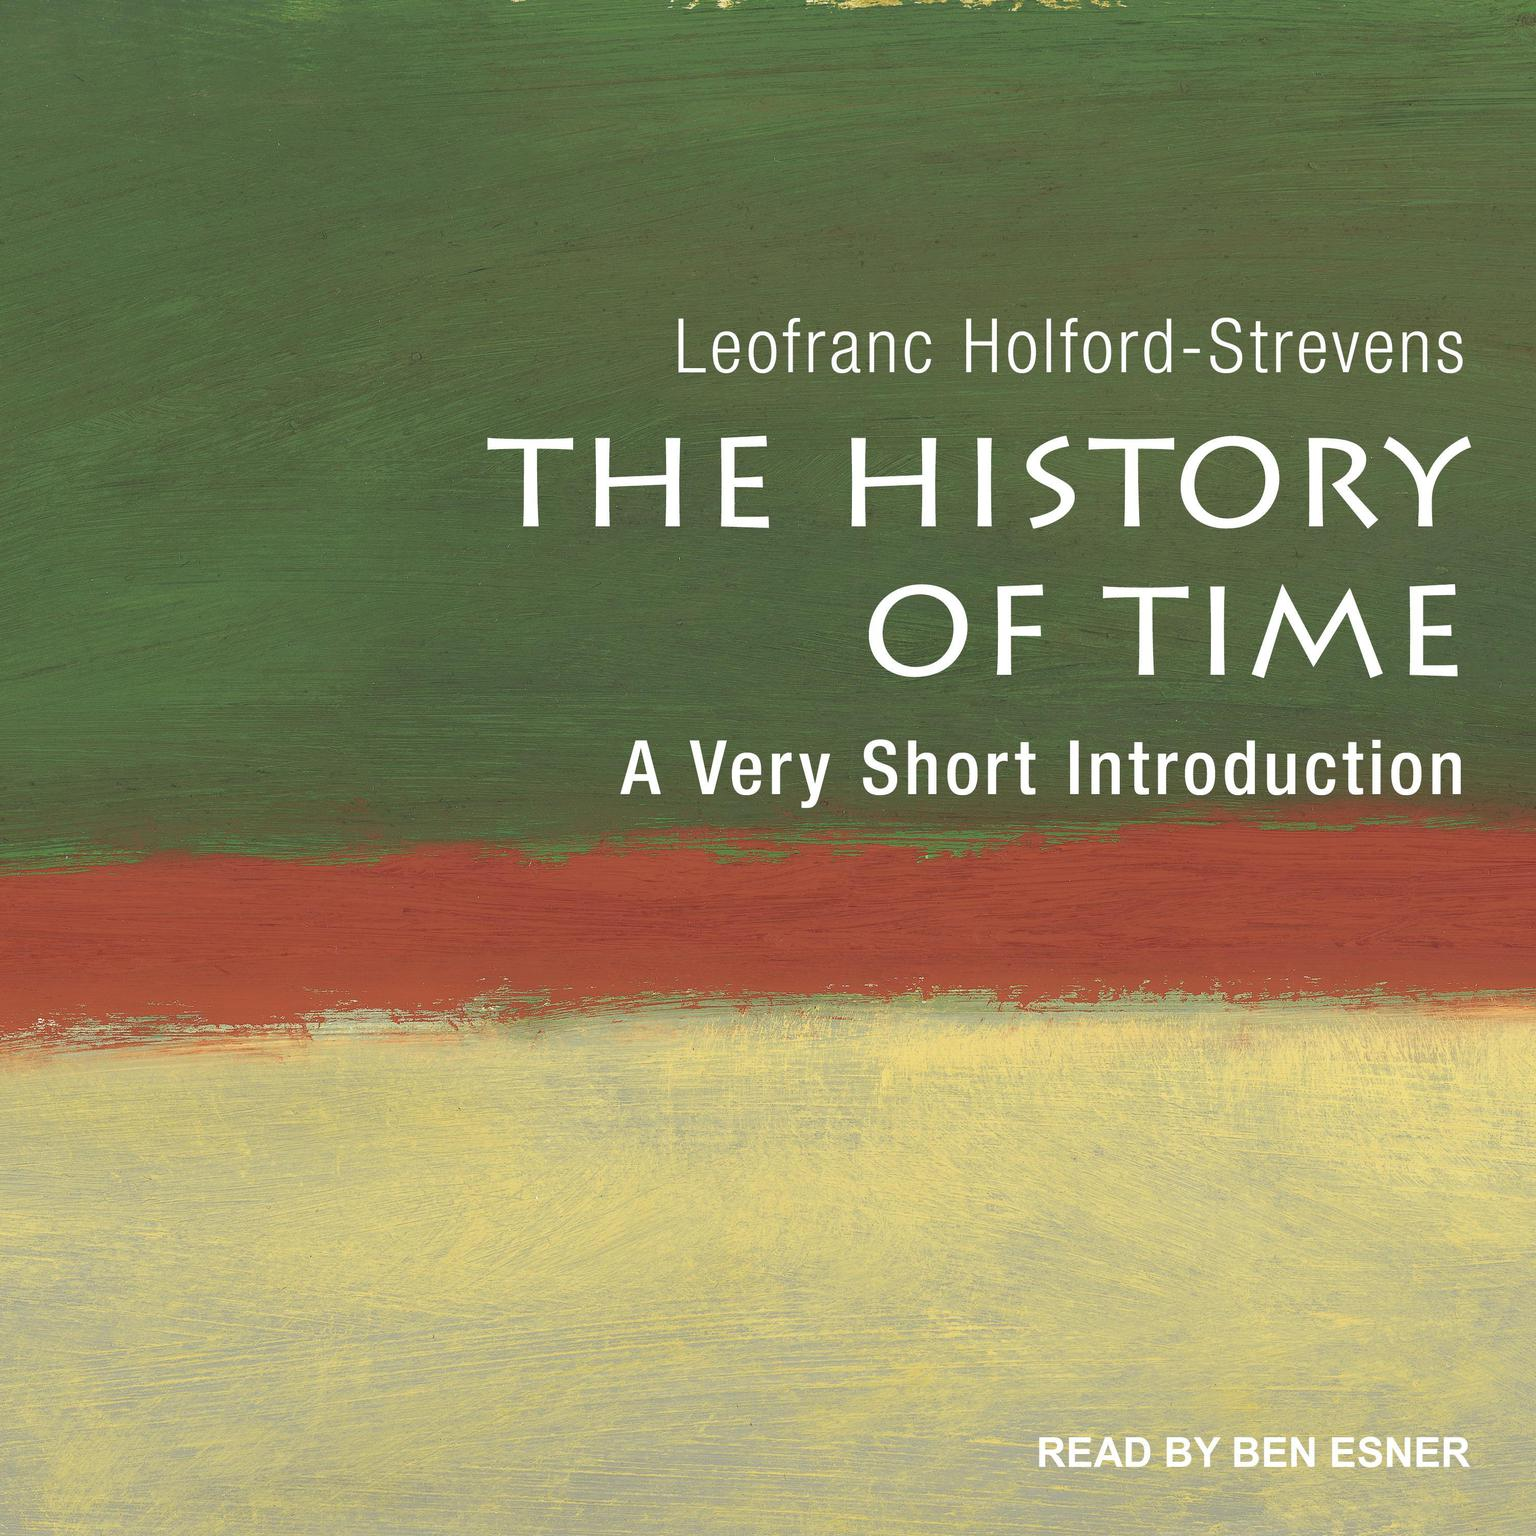 The History of Time: A Very Short Introduction Audiobook, by Leofranc Holford-Strevens